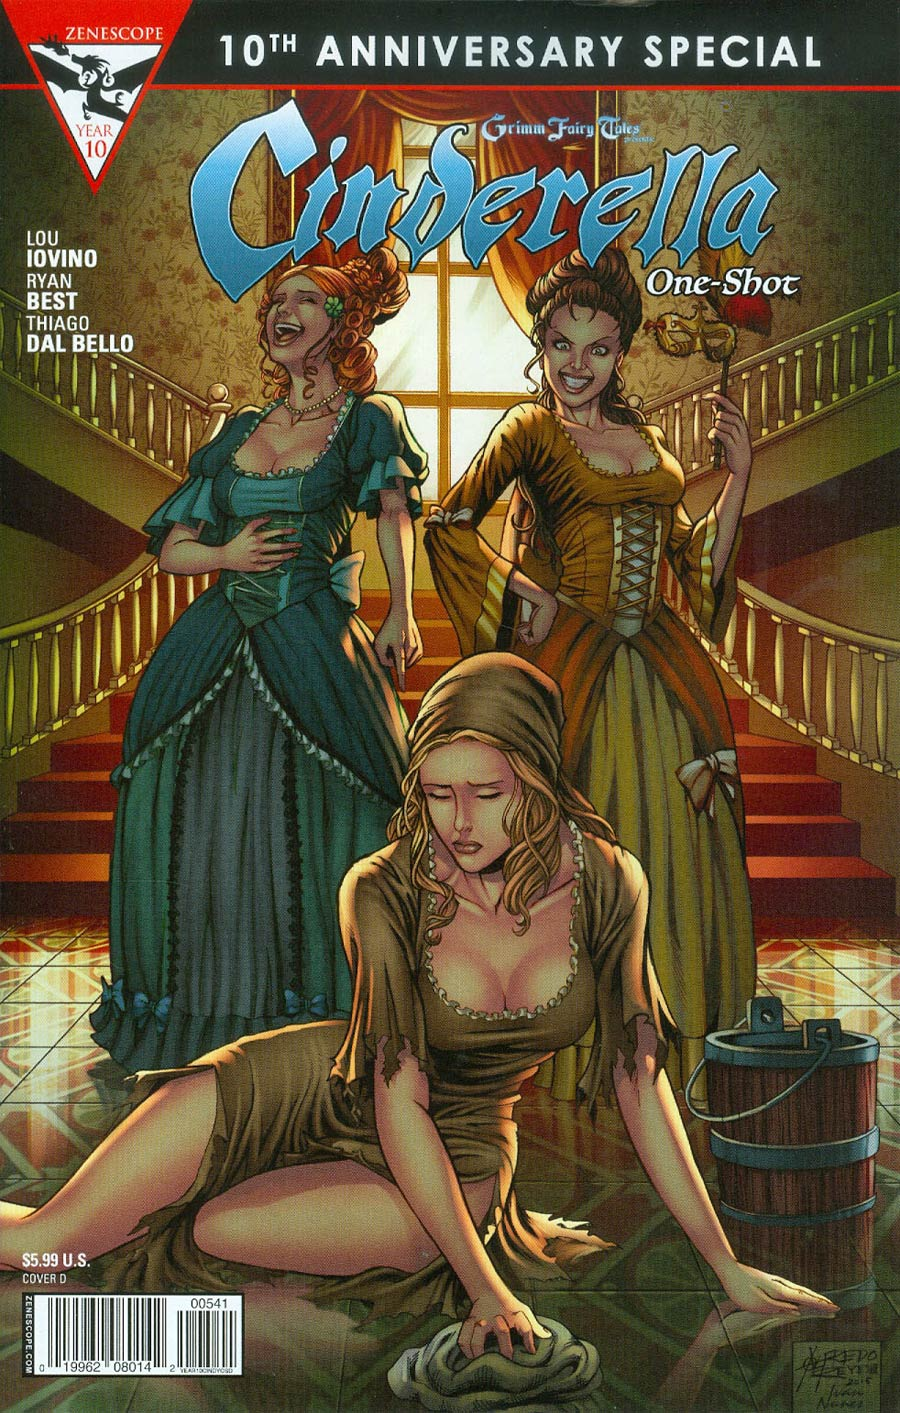 Grimm Fairy Tales Presents 10th Anniversary Special #5 Cinderella Cover D Alfredo Reyes